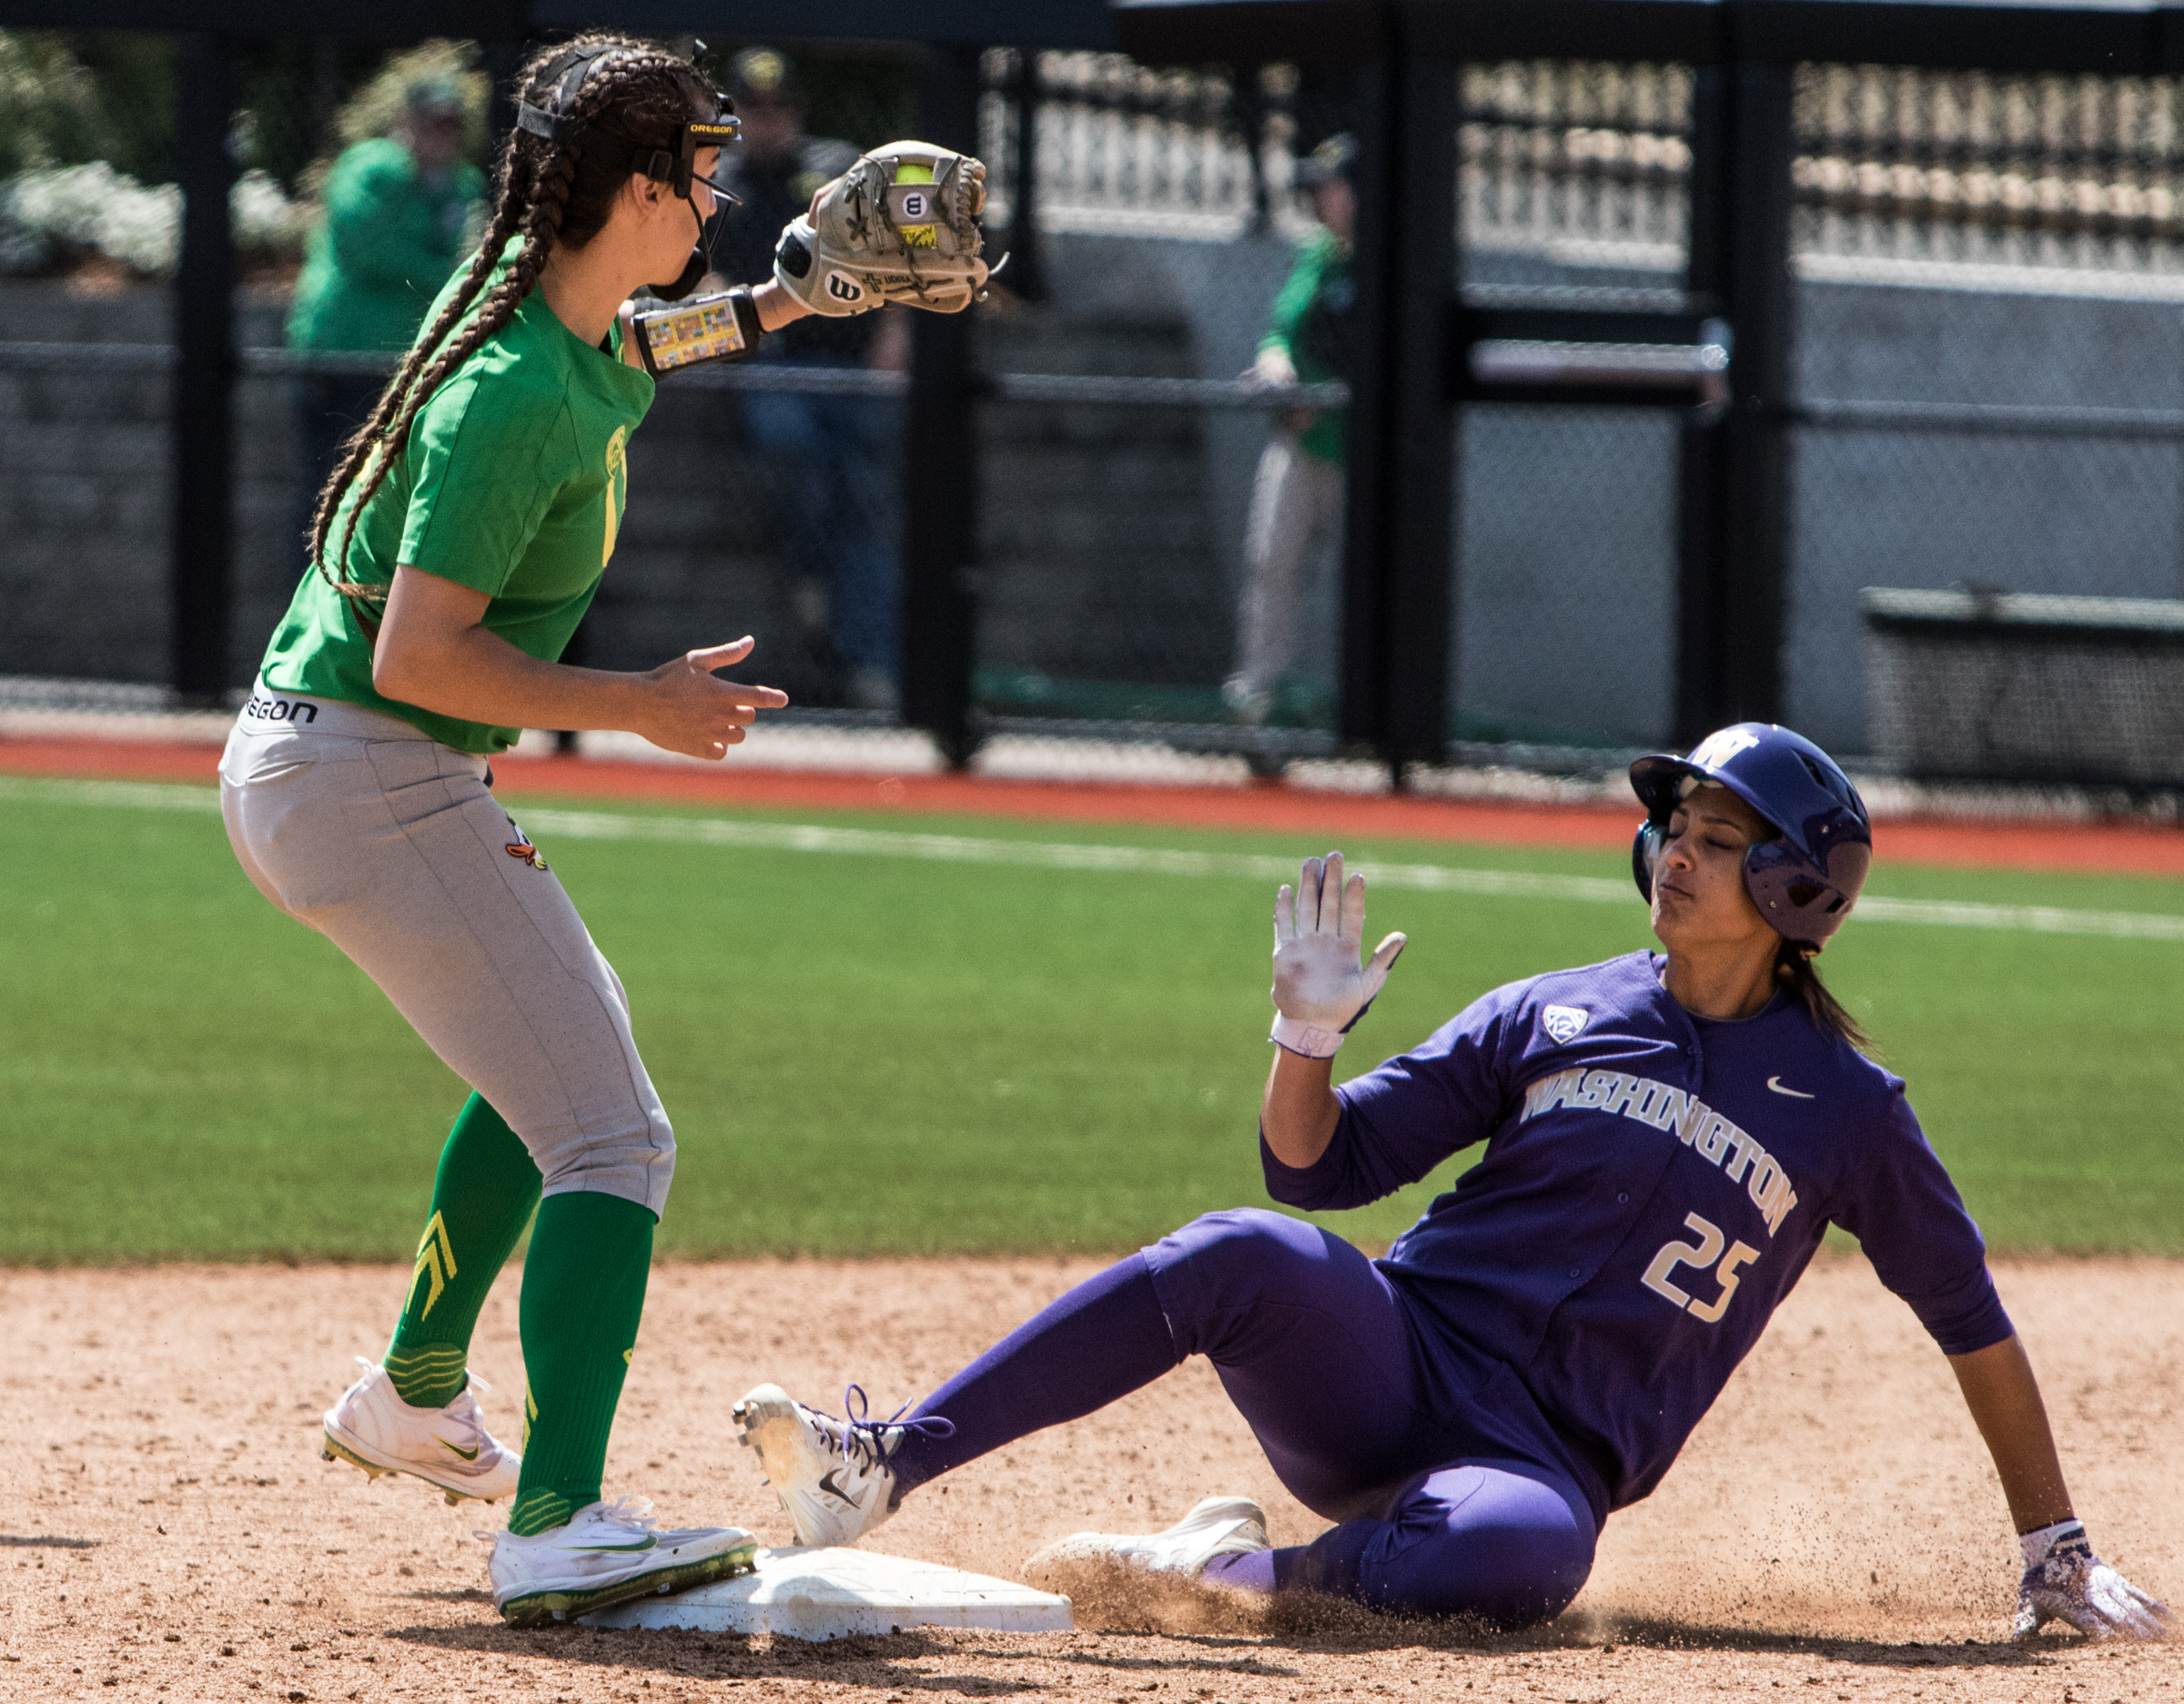 Oregon Ducks infielder Nikki Udria (#3) forces Washington Husky Kirstyn Thomas (#25) out at second base. In the final game of a three-game series, the University of Washington Huskies defeated the Oregon Ducks 5-3.  The Ducks led through the bottom of the 7th inning, but Washington's Morganne Flores (#47) tied it up with a two-run double.  Flores drove in two more runs in the 9th to take the lead.  Photo by Austin Hicks, Oregon News Lab